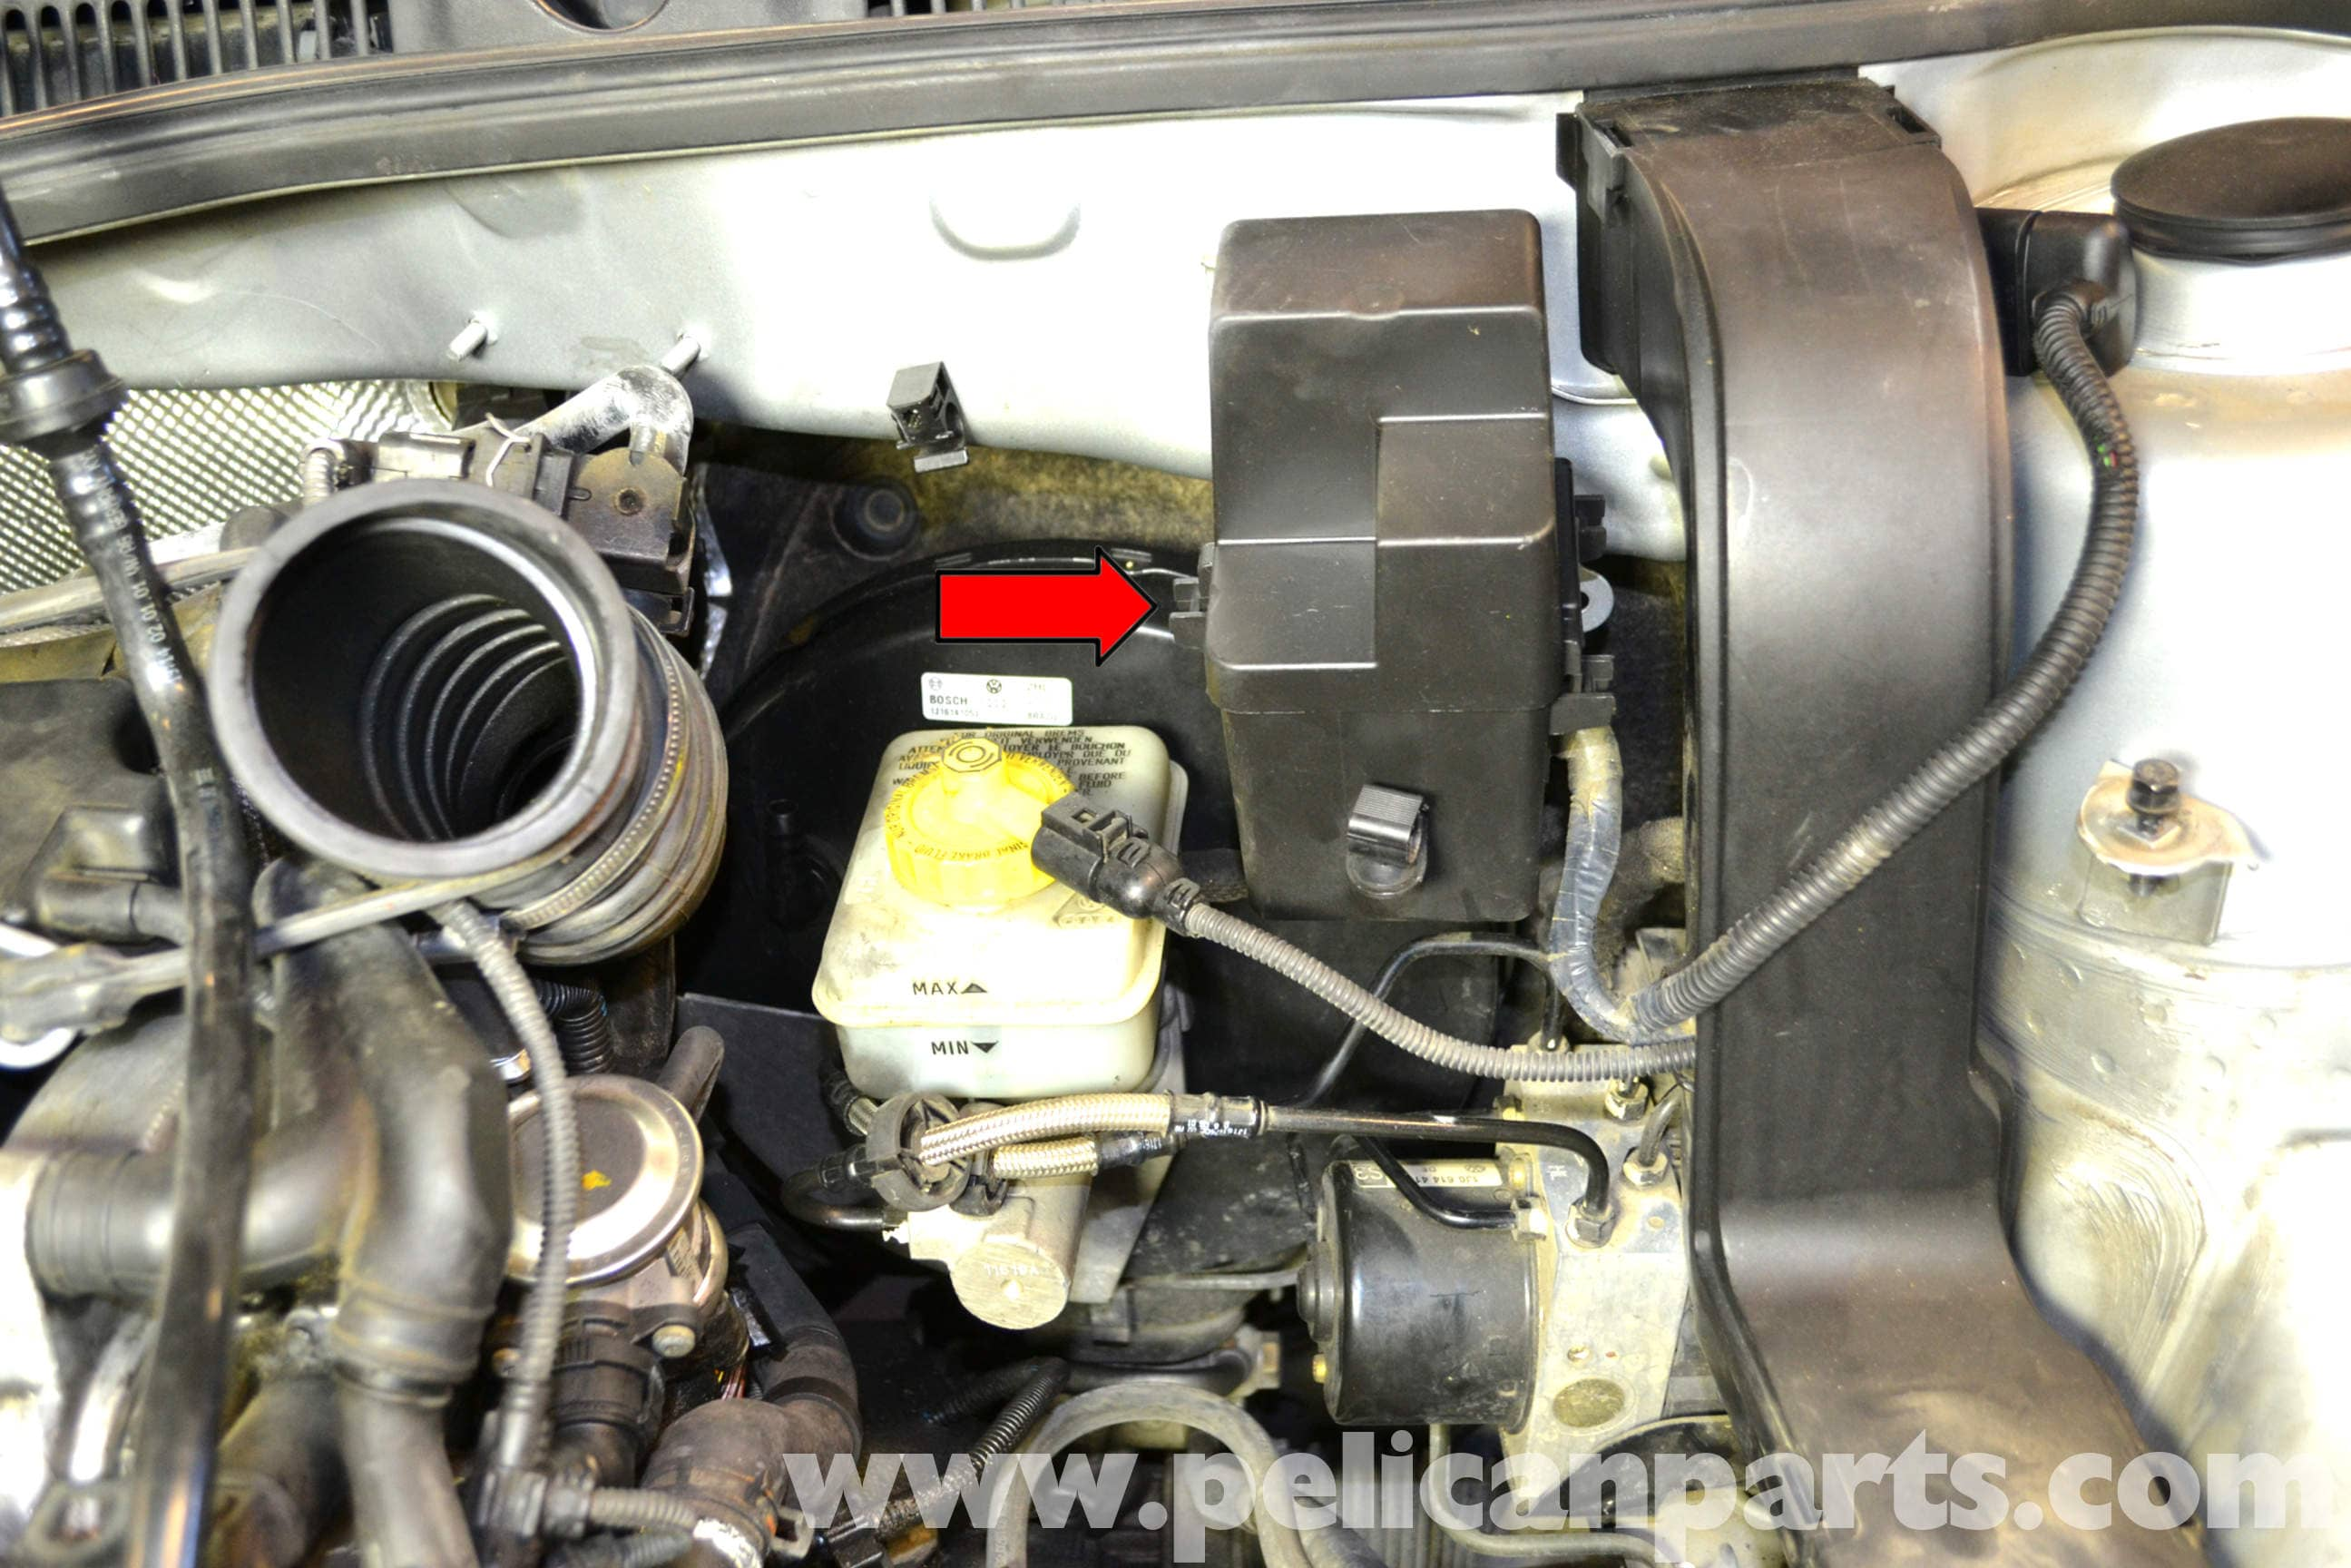 2001 Audi A4 Fuel Pump Relay Location Wiring Diagram Photos For Help